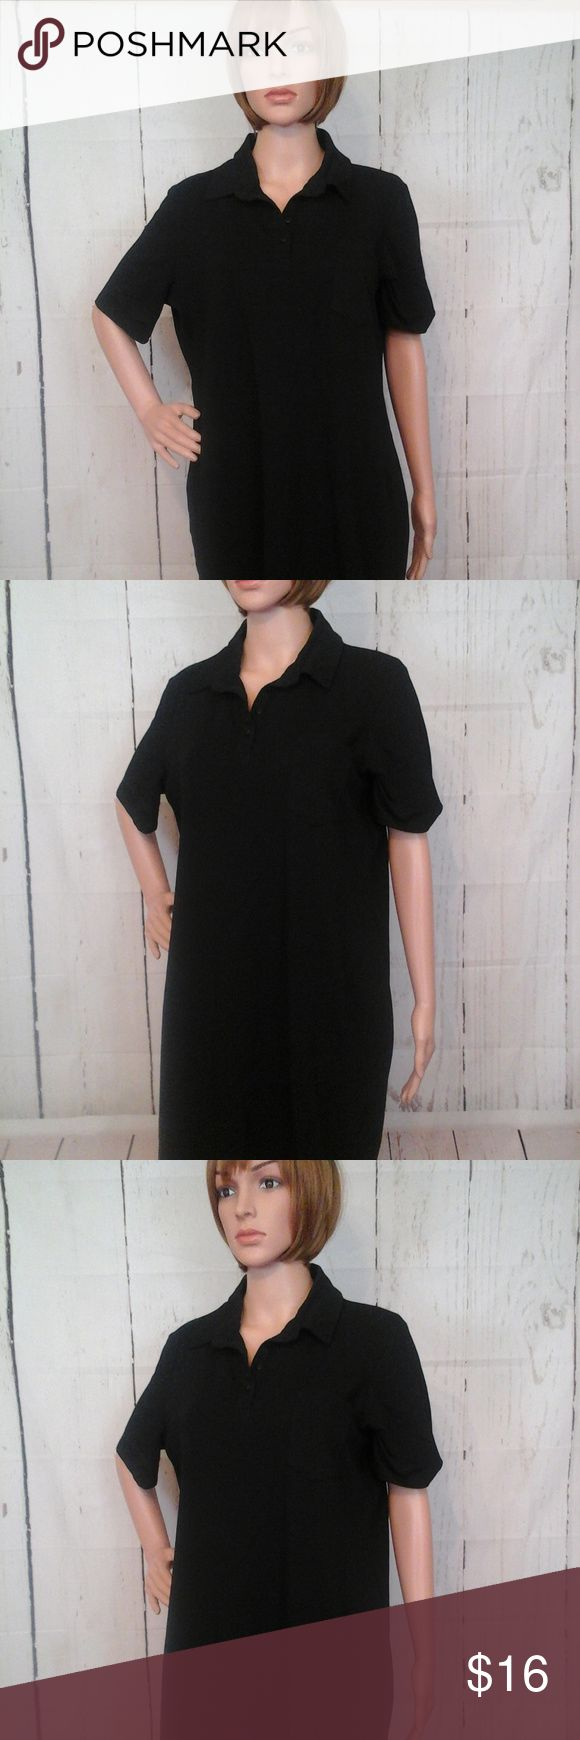 "Asos Black Sz 14 Curve Polo Tee Shirt Shift Dress New with Tags  Chest = 22"" (armpit to armpit - across the front) Length = 38"" (shoulder to hem) Material:  Features:   No trades or modeling of clothing, jewelry, shoes or accessories.  If additional measurements are required to ensure the perfect fit for you, I will gladly provide them. All items are from a smoke-free/pet-free home. ASOS Curve Dresses"